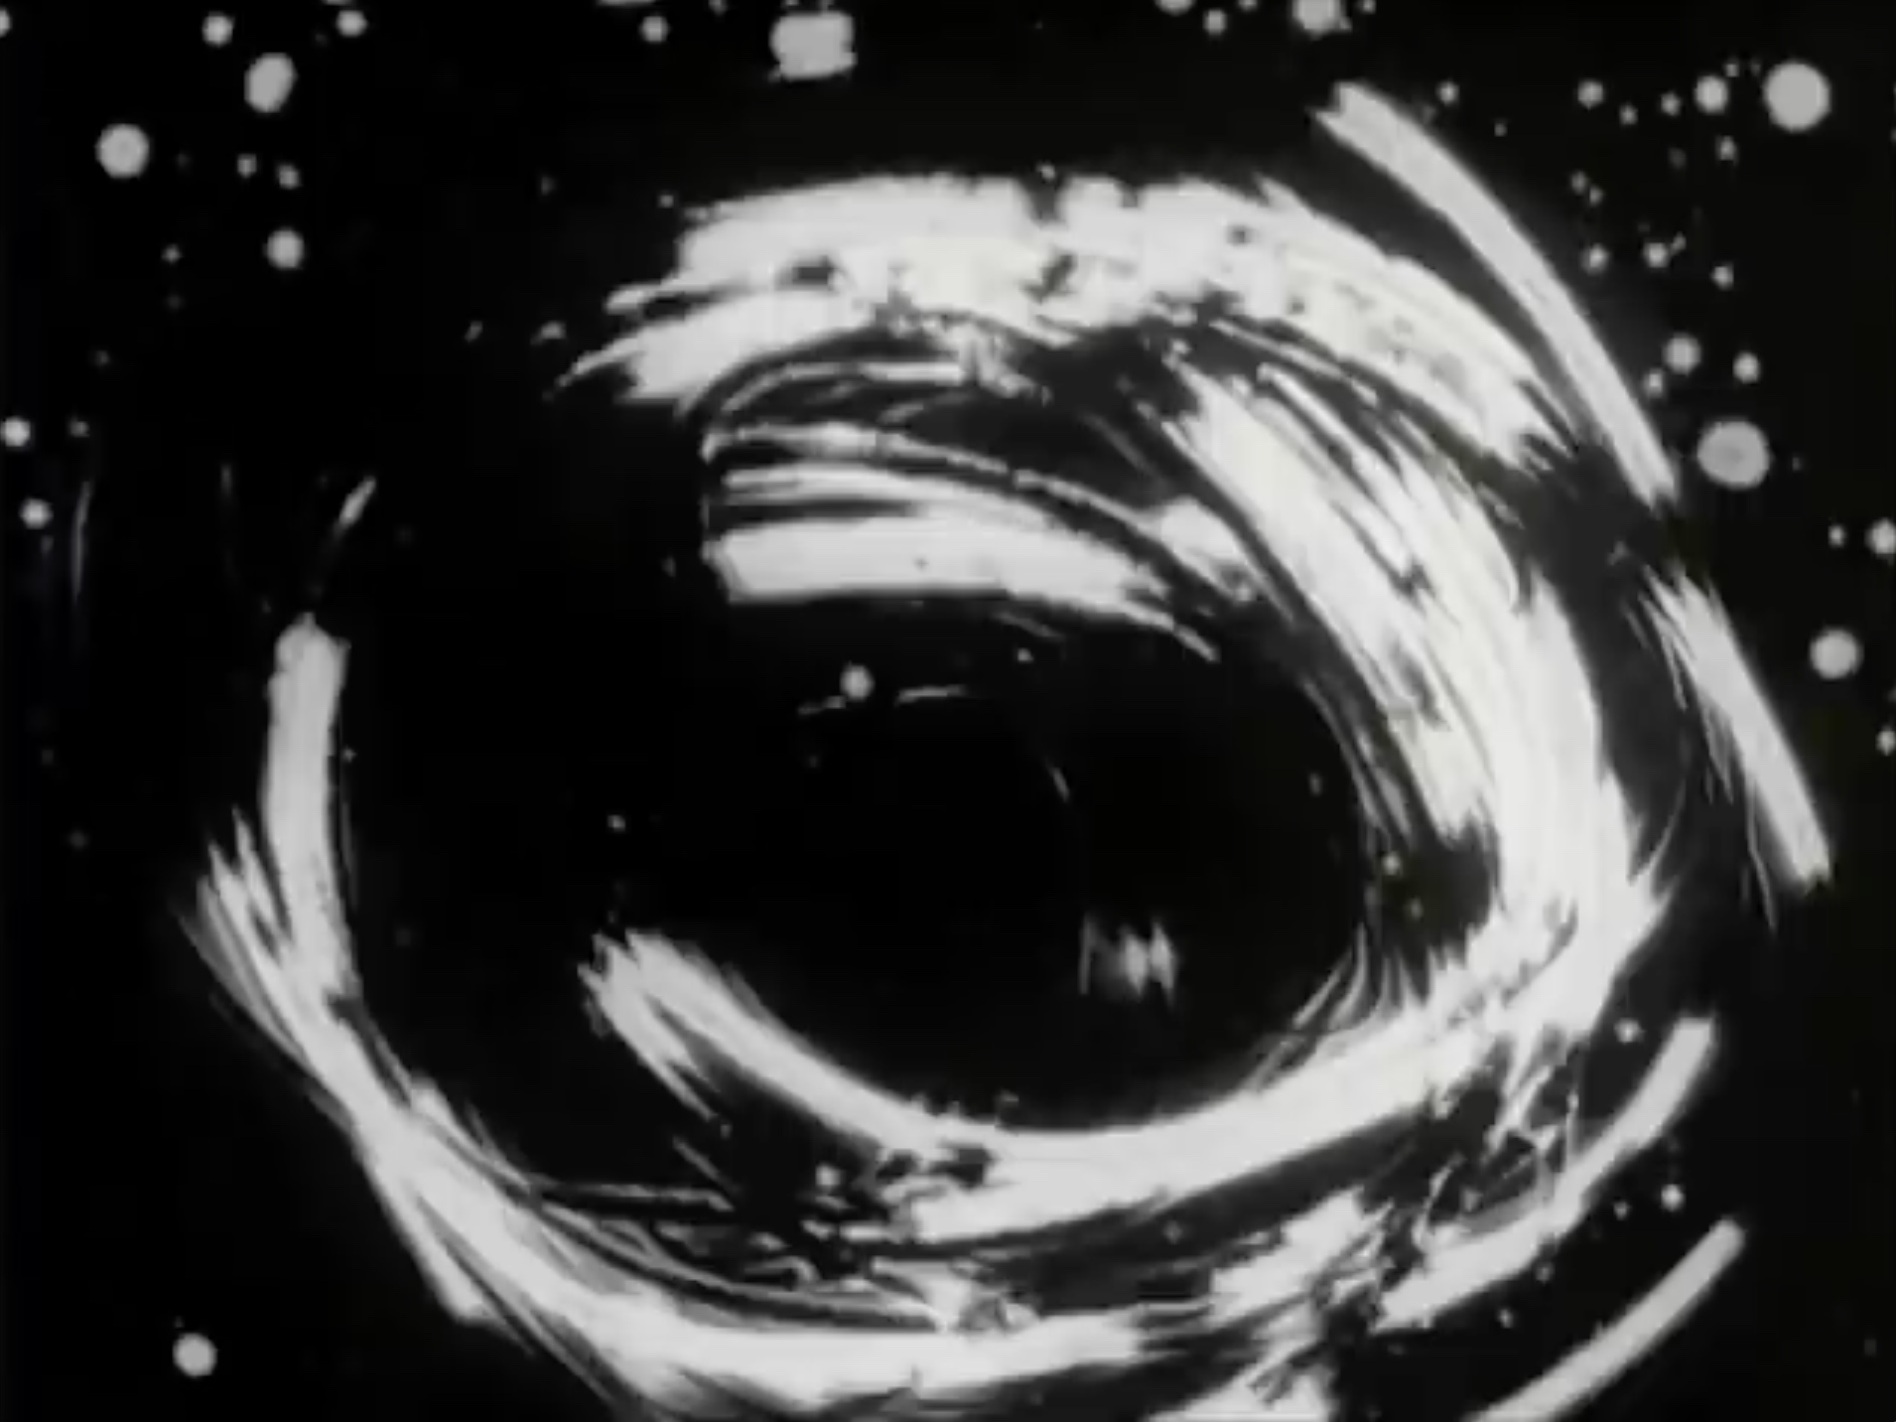 Black Out     Aldo Tambellini     1965 | 9 minutes | USA | 16mm | b&w | sound  This film, like an action painting by Franz Kline, is a rising crescendo of abstract images. Rapid cuts of white forms on a black background supplemented by an equally abstract soundtrack give the impression of a bombardment in celestial space or on a battlefield where cannons fire on an unseen enemy into the night. -Grove Press Film Catalog